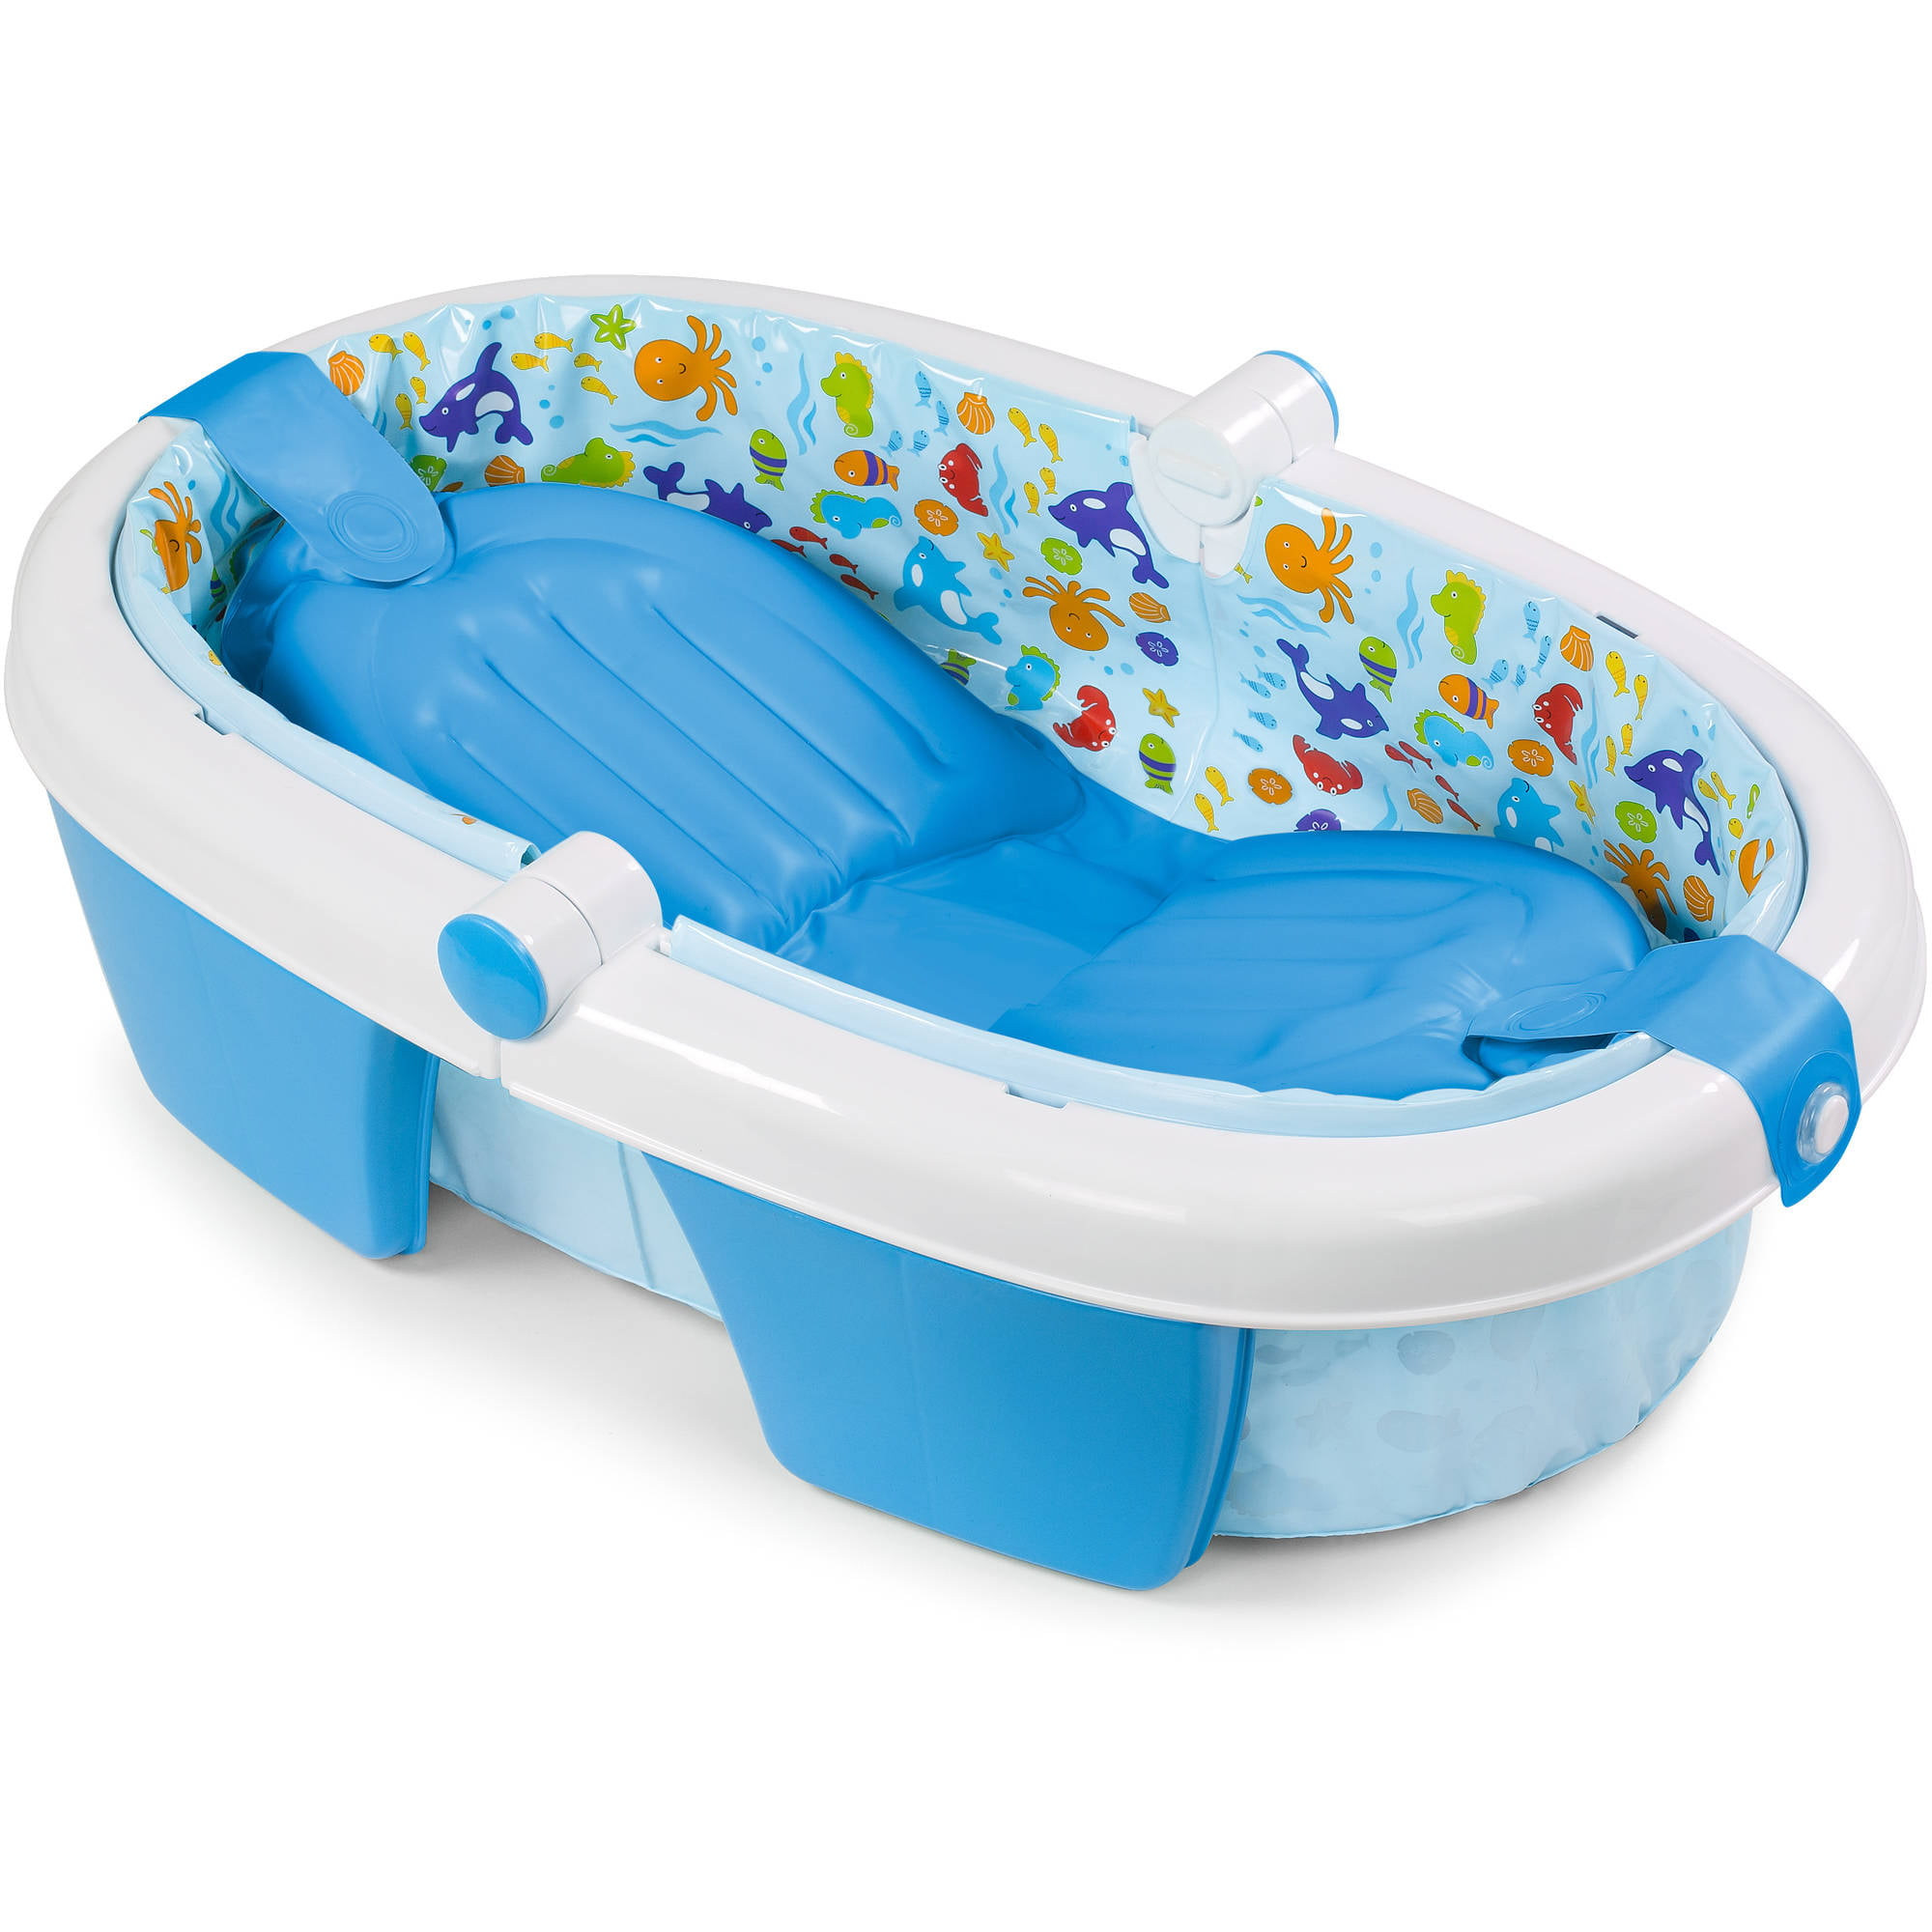 Baby bath chair walmart - Baby Bath Chair Walmart 6